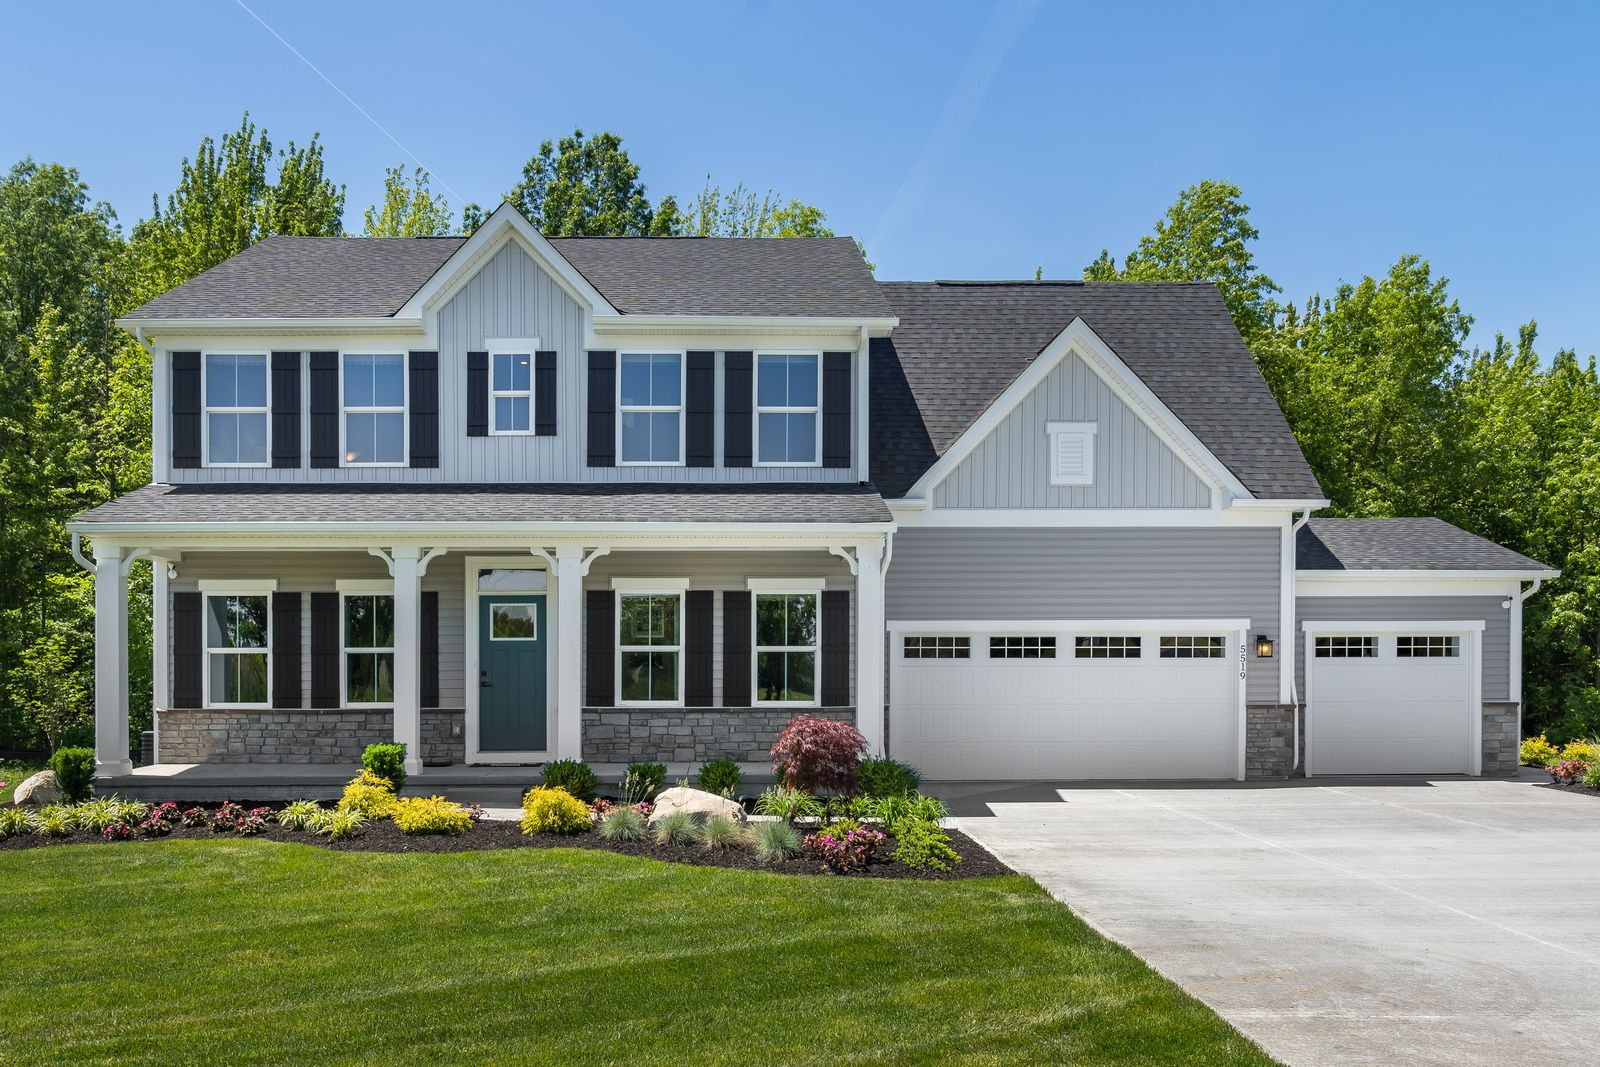 Welcome to Spring View Estates:Enjoy space and privacy at Spring View Estates with1/3+ acre homesites, panoramic mountain views and only 3 miles to Frederick.Schedule an appointment today!